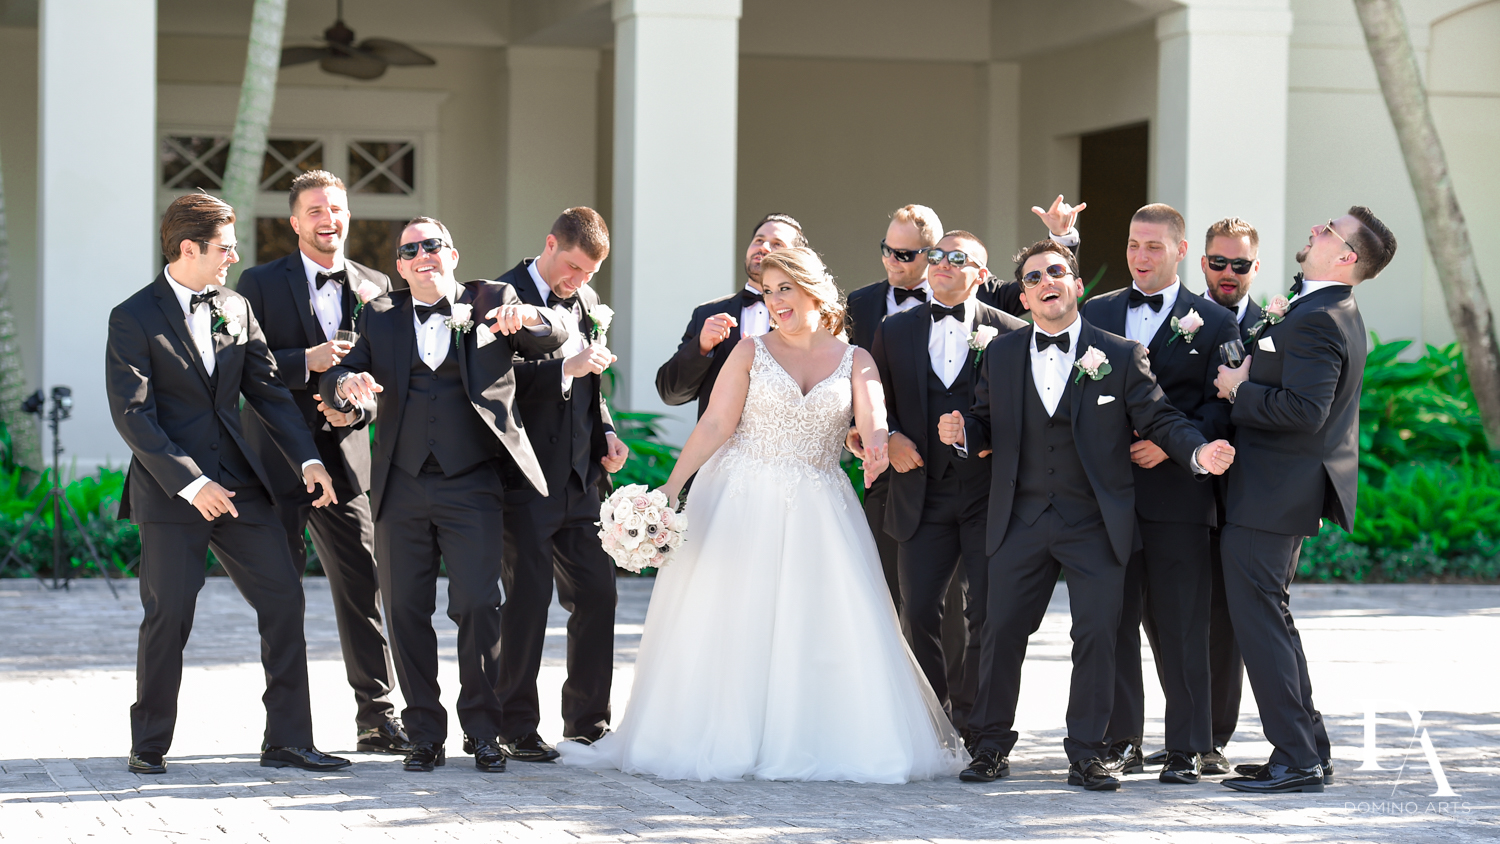 Fun wedding party pictures at Romantic Outdoors Wedding at Woodfield Country Club in Boca Raton, Florida by Domino Arts Photography